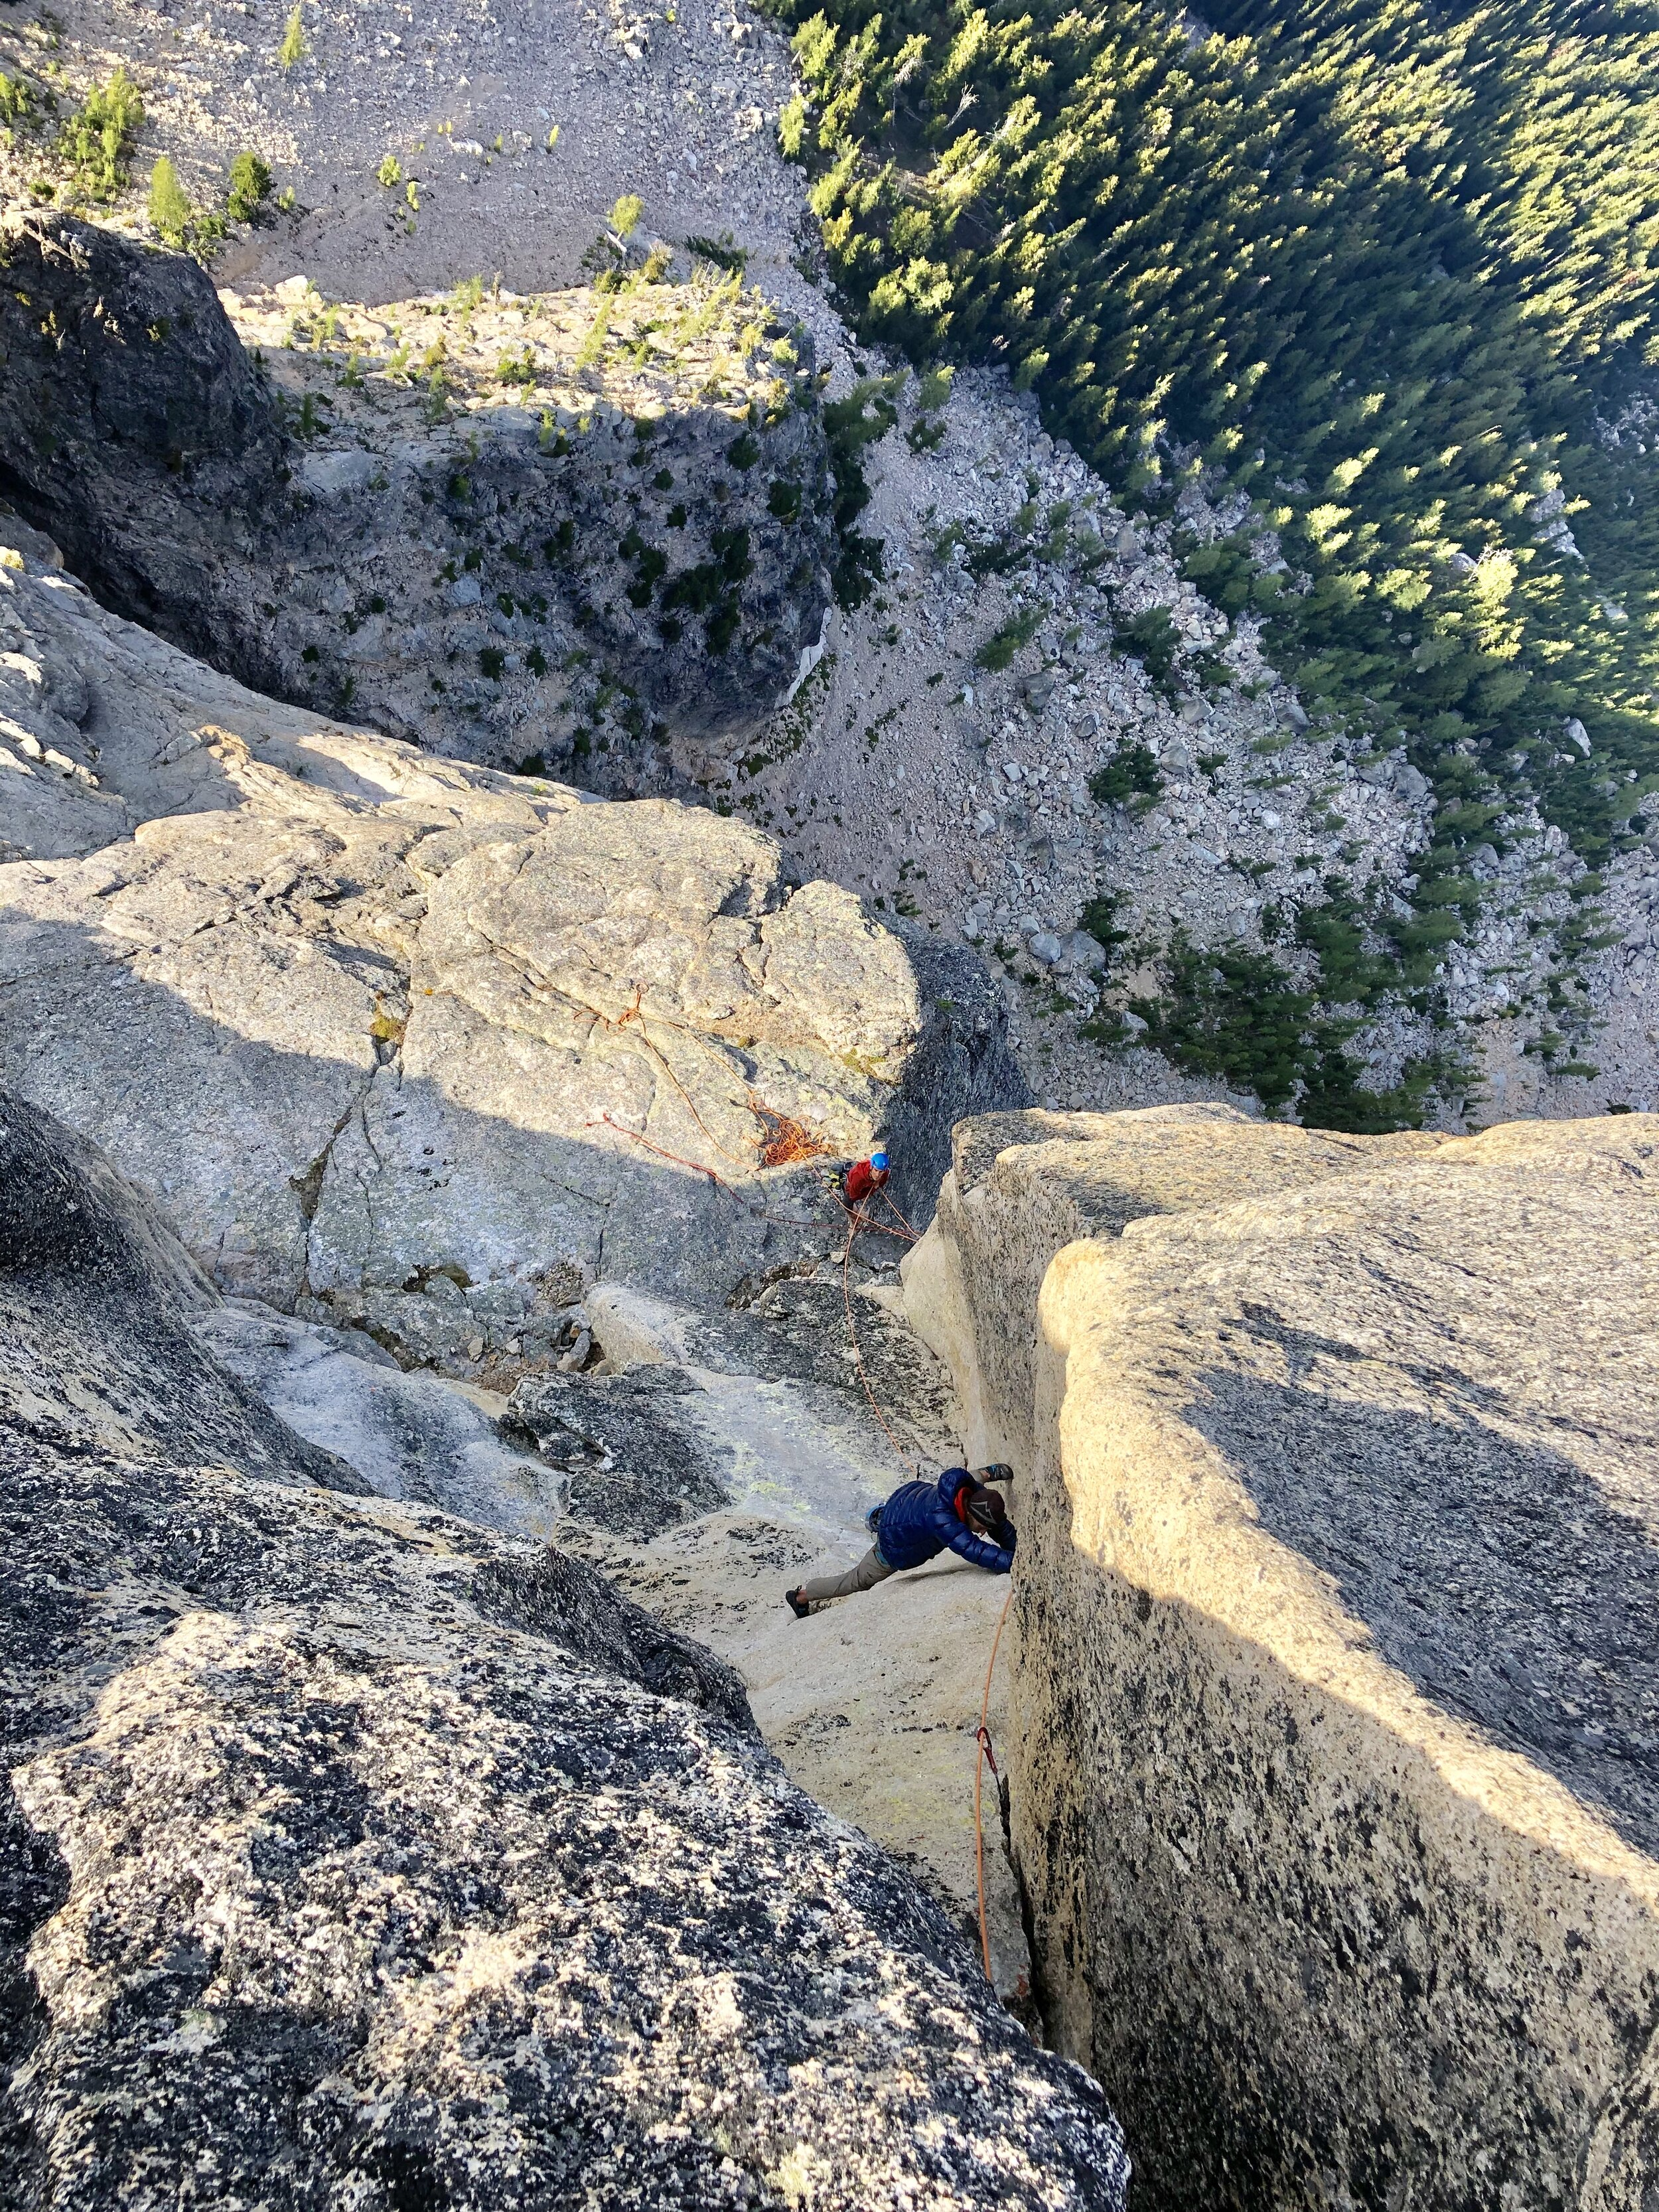 Blake Herrington on the final steep 5.11 pitch.